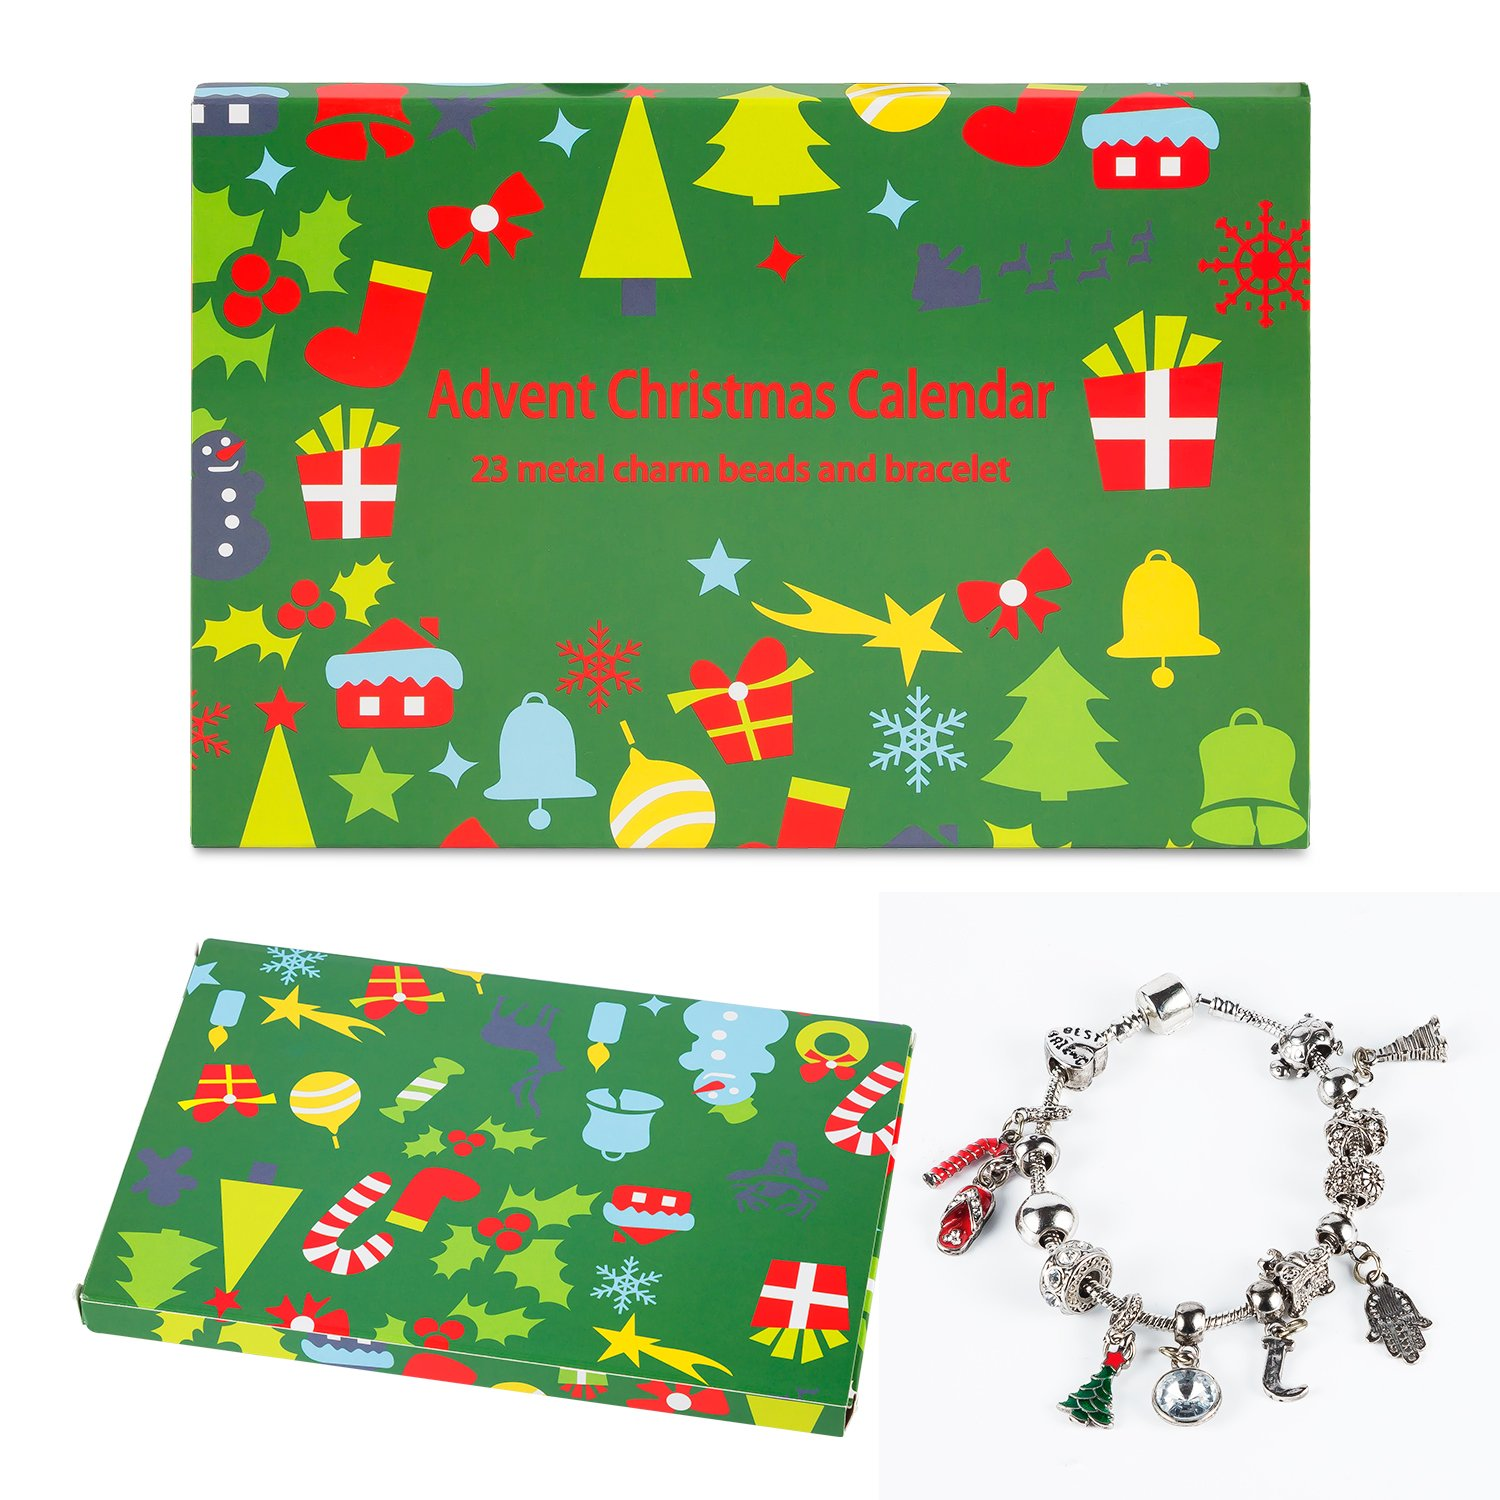 Mouttop Advent Calendar, 24 Day Advent Calendar with Christmas Fashion Jewellery 23 charms with 1 Bracelet and 1 necklace